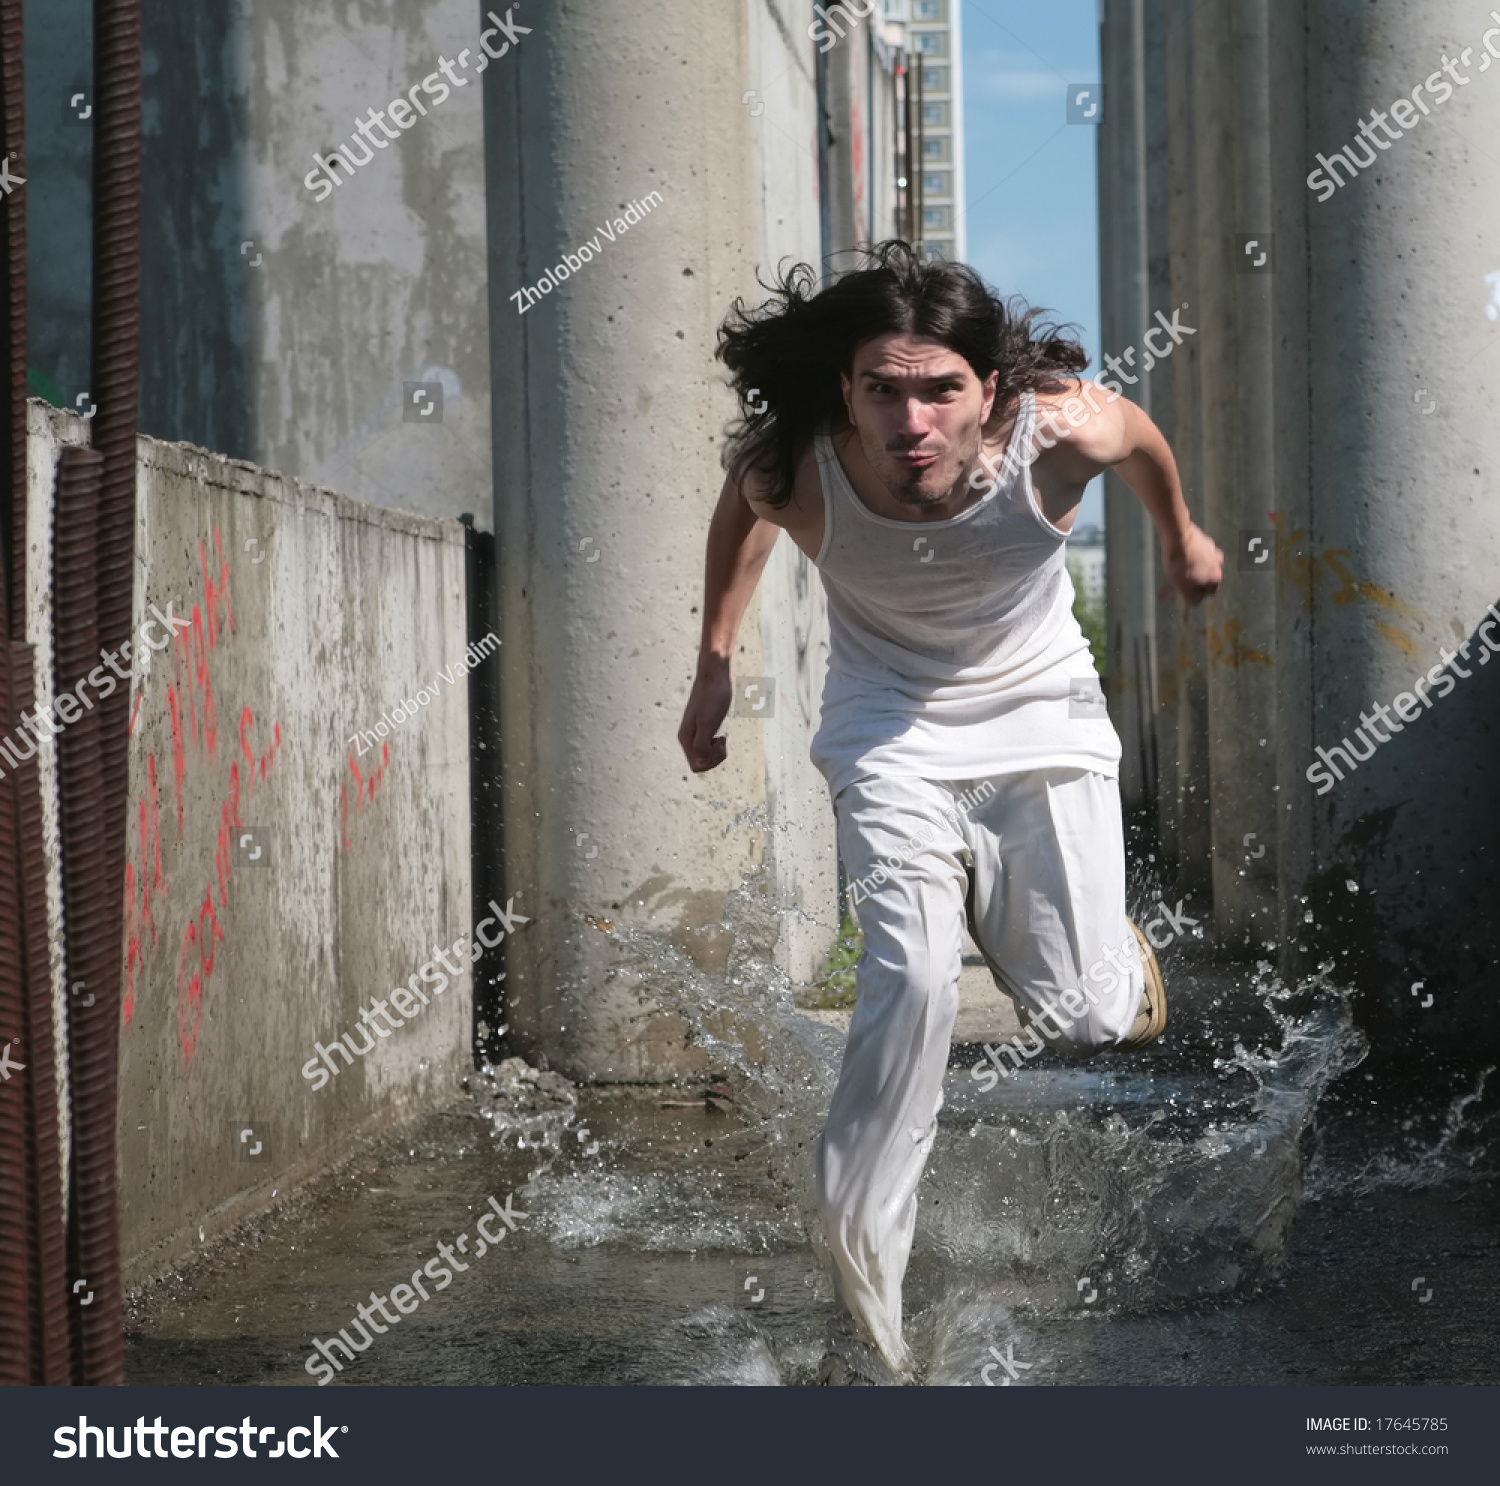 Incredible Running On Water Man White Cloth Stock Photo 17645785 Shutterstock Hairstyles For Women Draintrainus